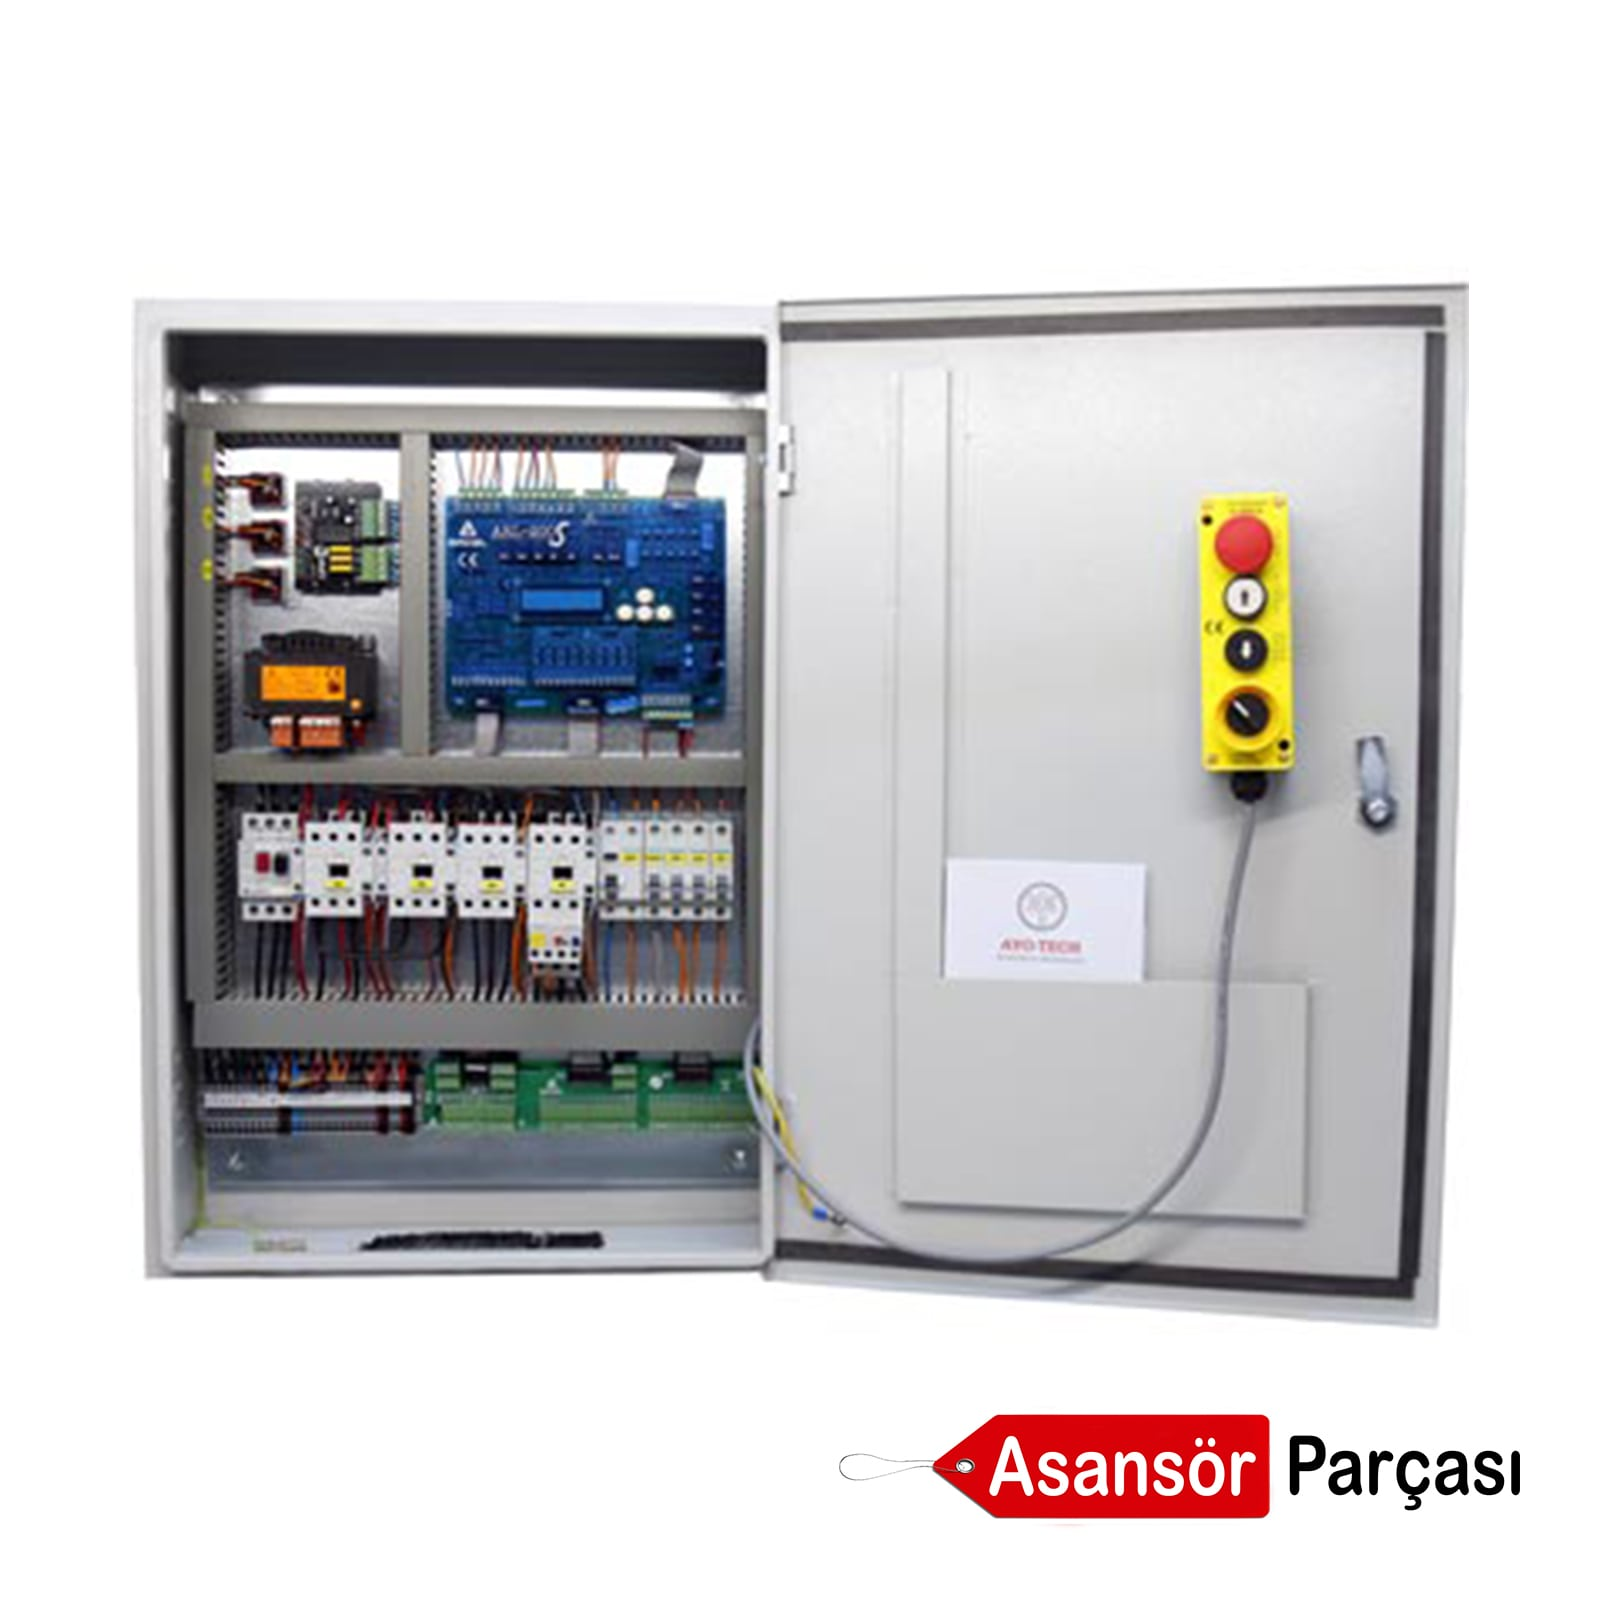 Arkel brand Arl200 series two speed control panel